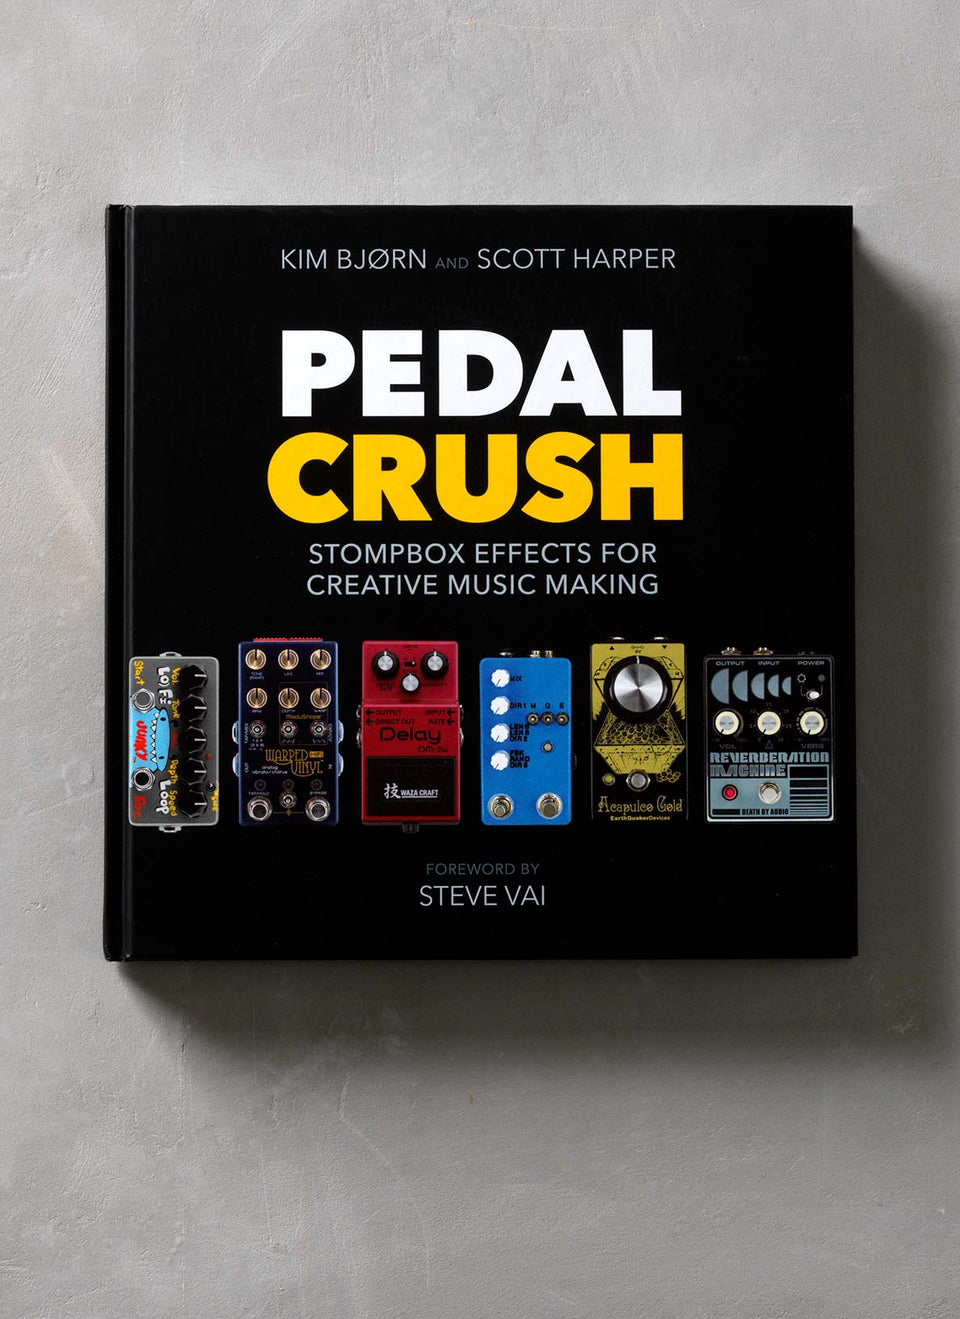 PEDAL CRUSH - Stompbox Effects For Creative Music Making